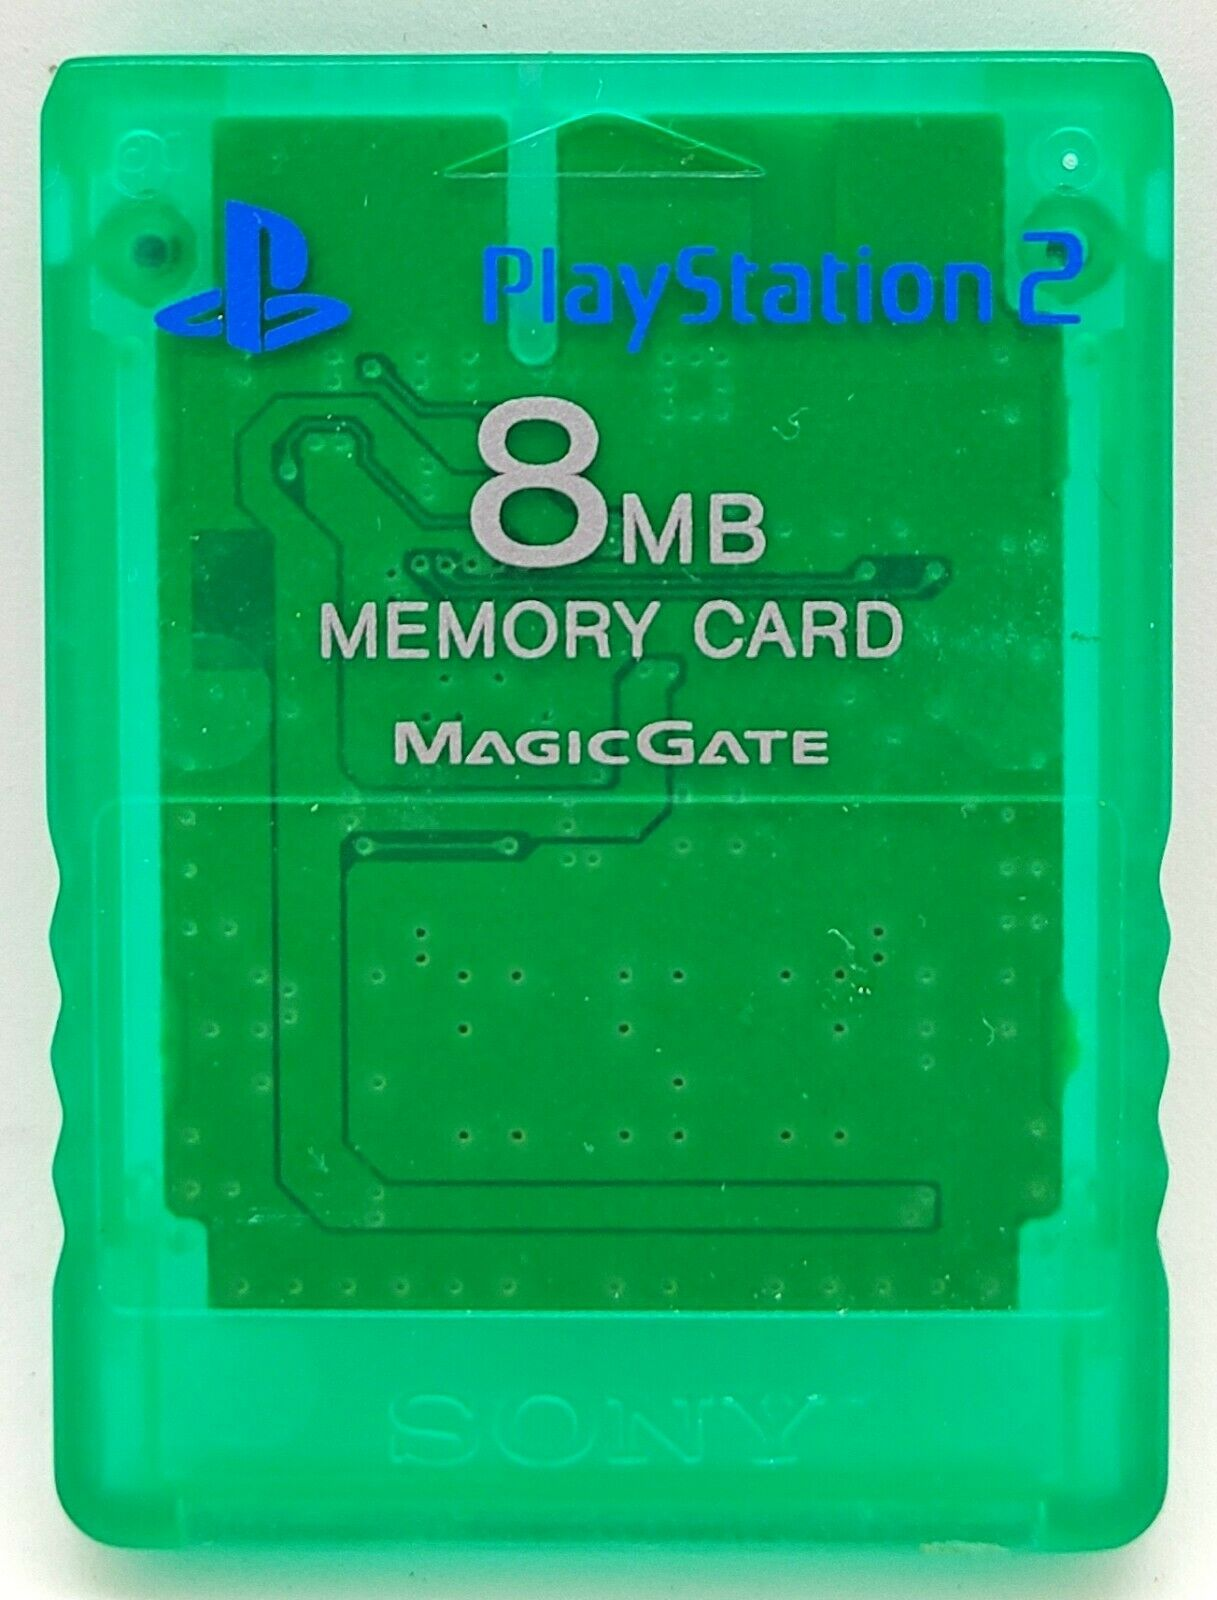 Official Genuine Green Magic Gate Memory Card for Sony PlayStation 2 PS2 8MB